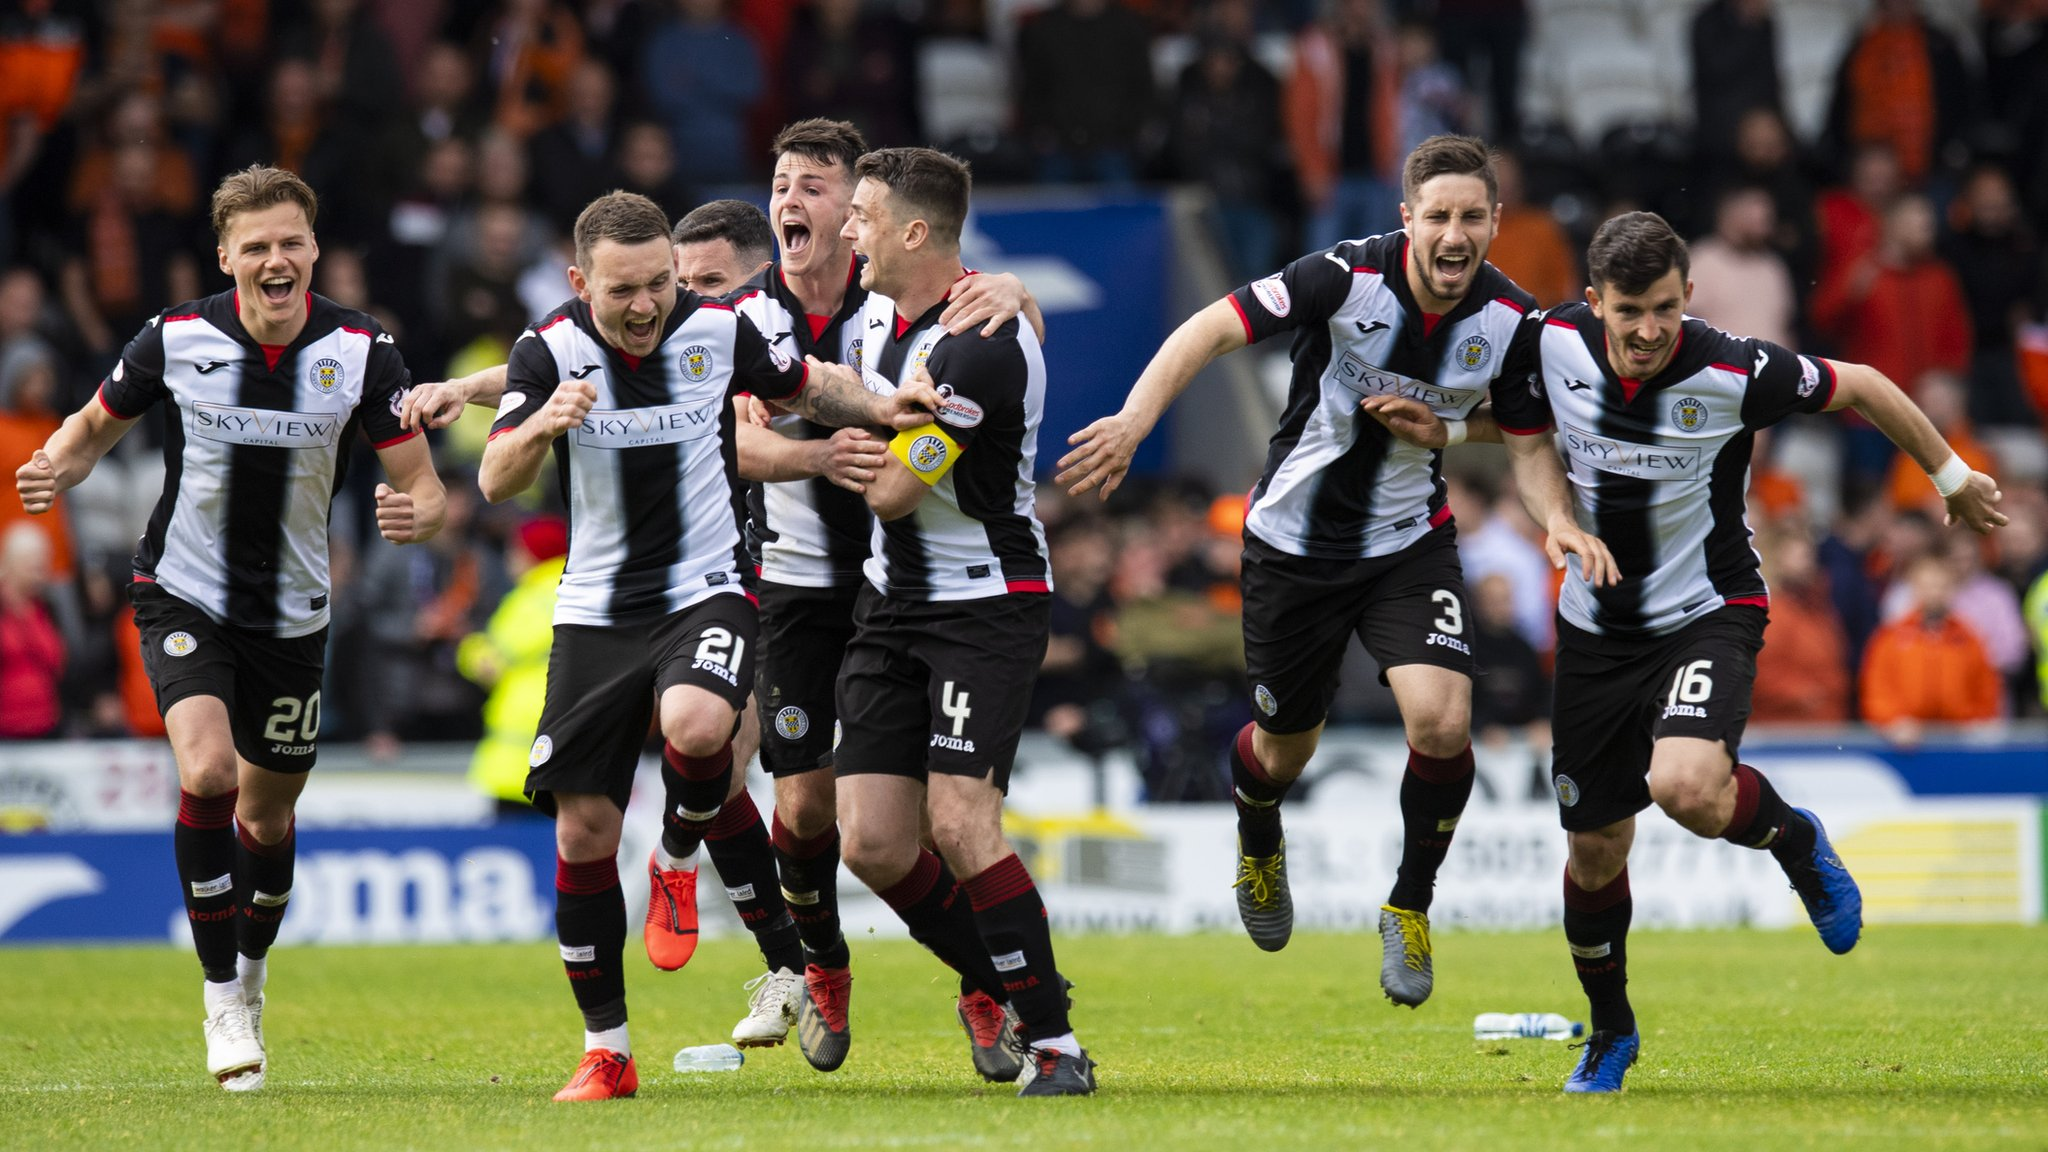 St Mirren 1-1 Dundee Utd: Saints escape relegation with penalty shootout win